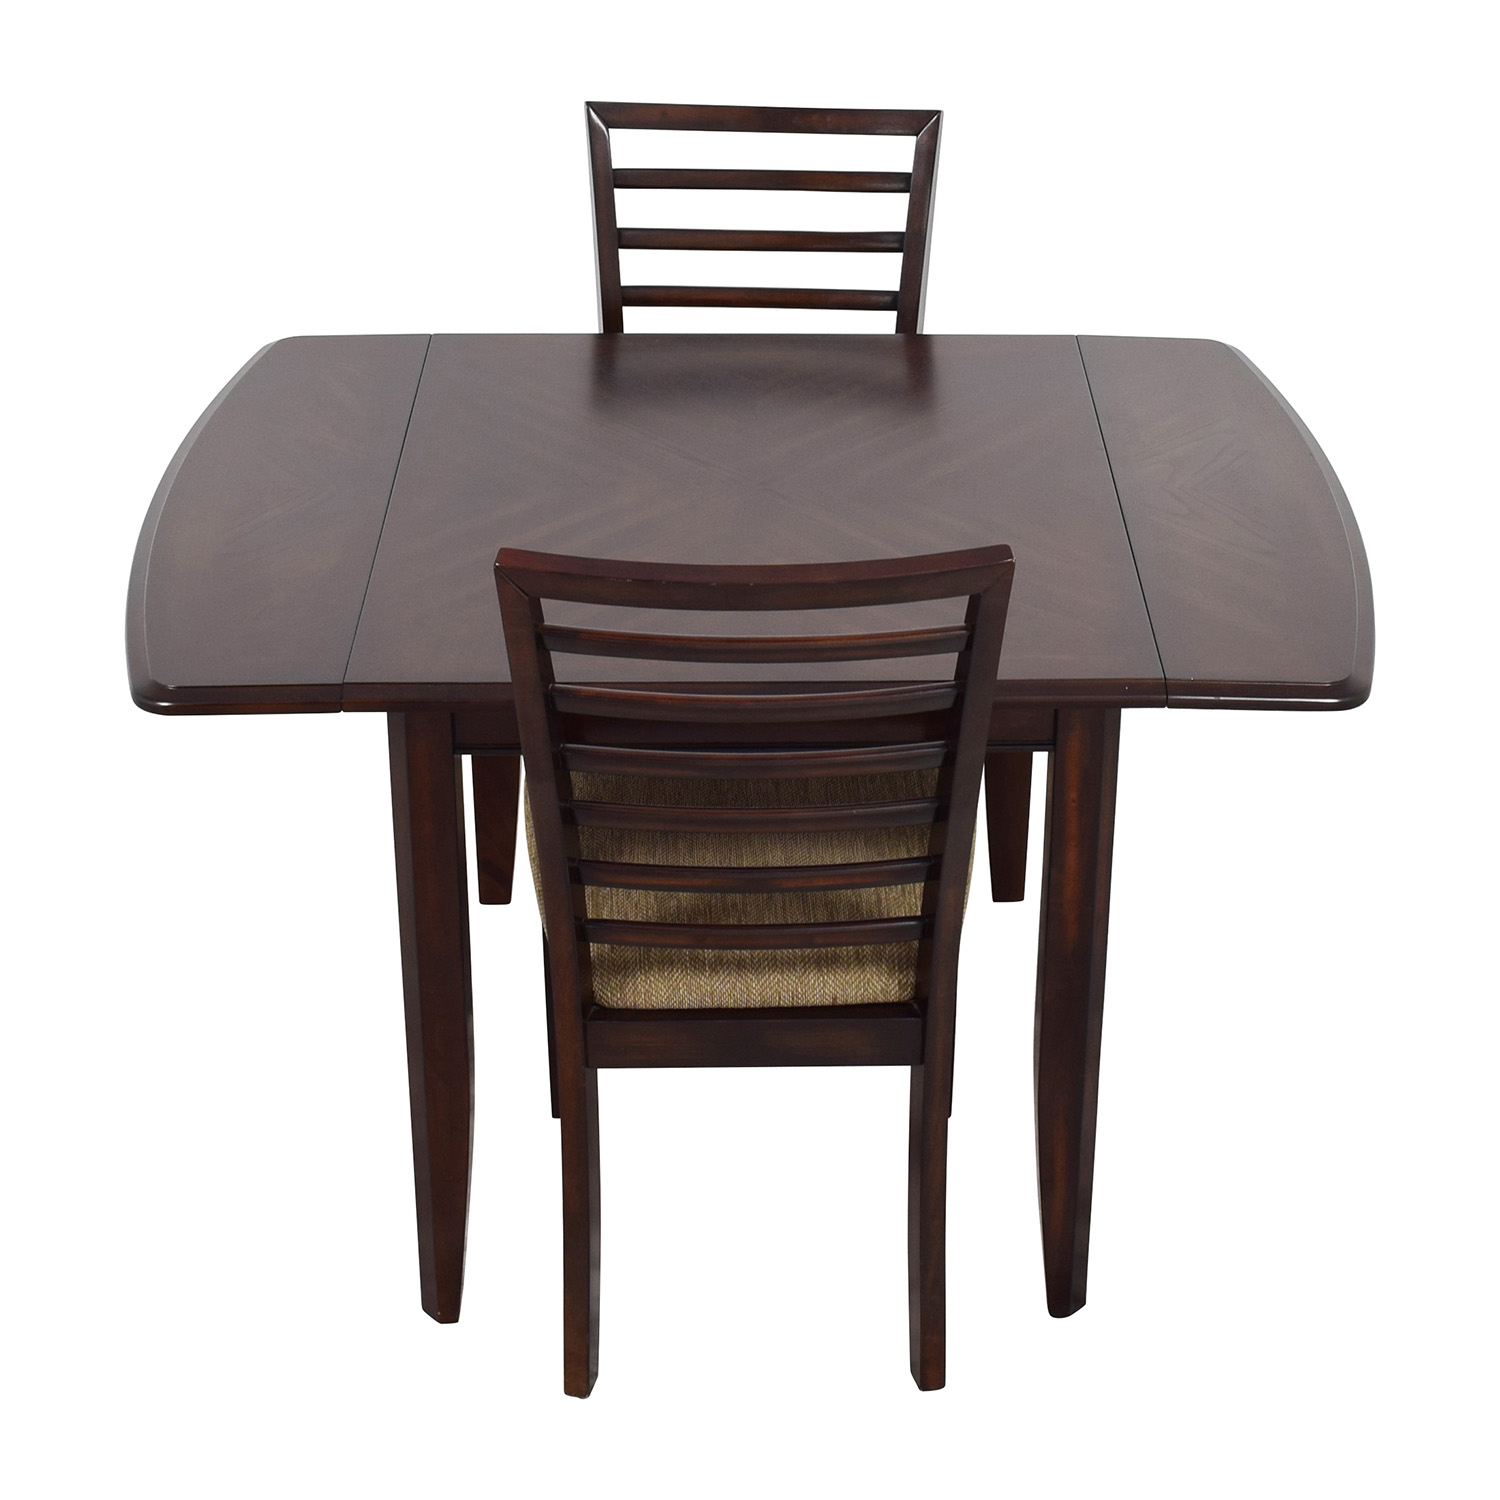 buy Raymour & Flanigan Raymour & Flanigan Chace Extendable Dining Set online